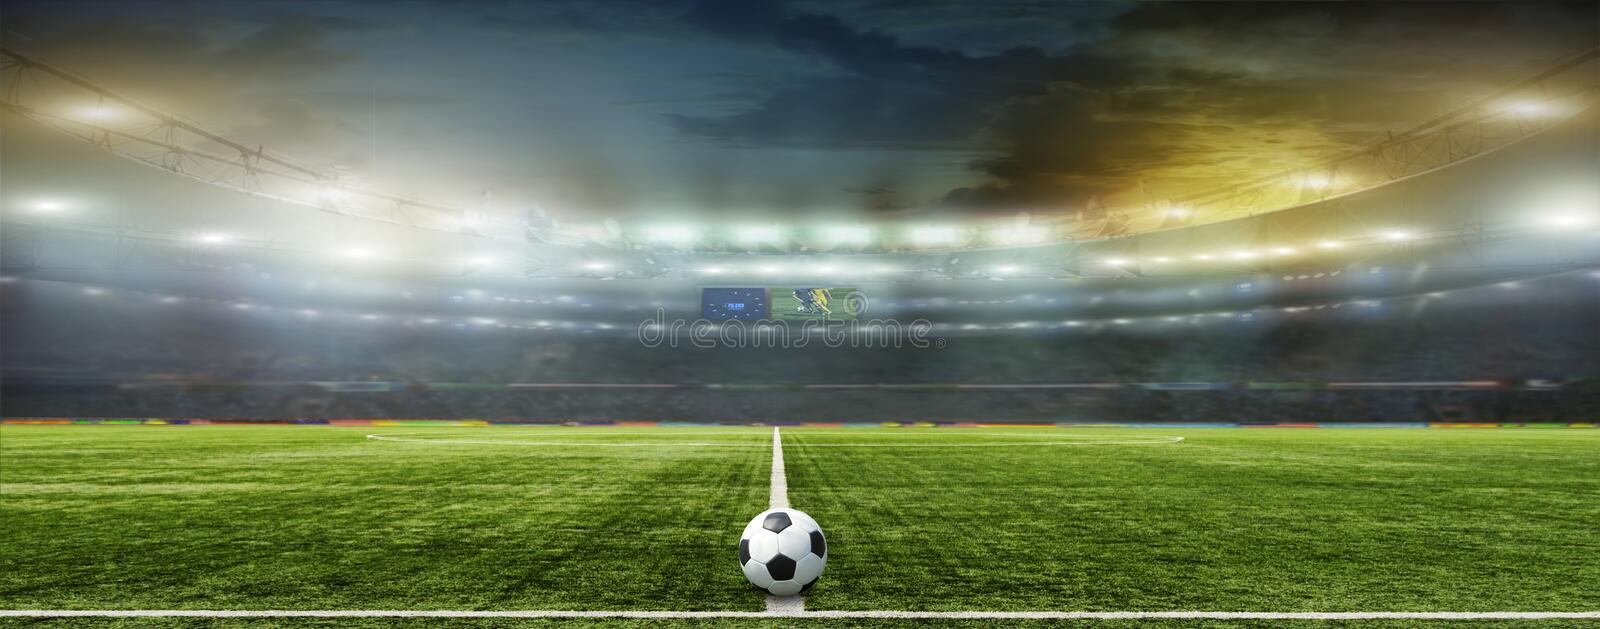 On The Stadium Abstract Football Or Soccer Backgrounds: Abstract Football Or Soccer Backgrounds Stock Image